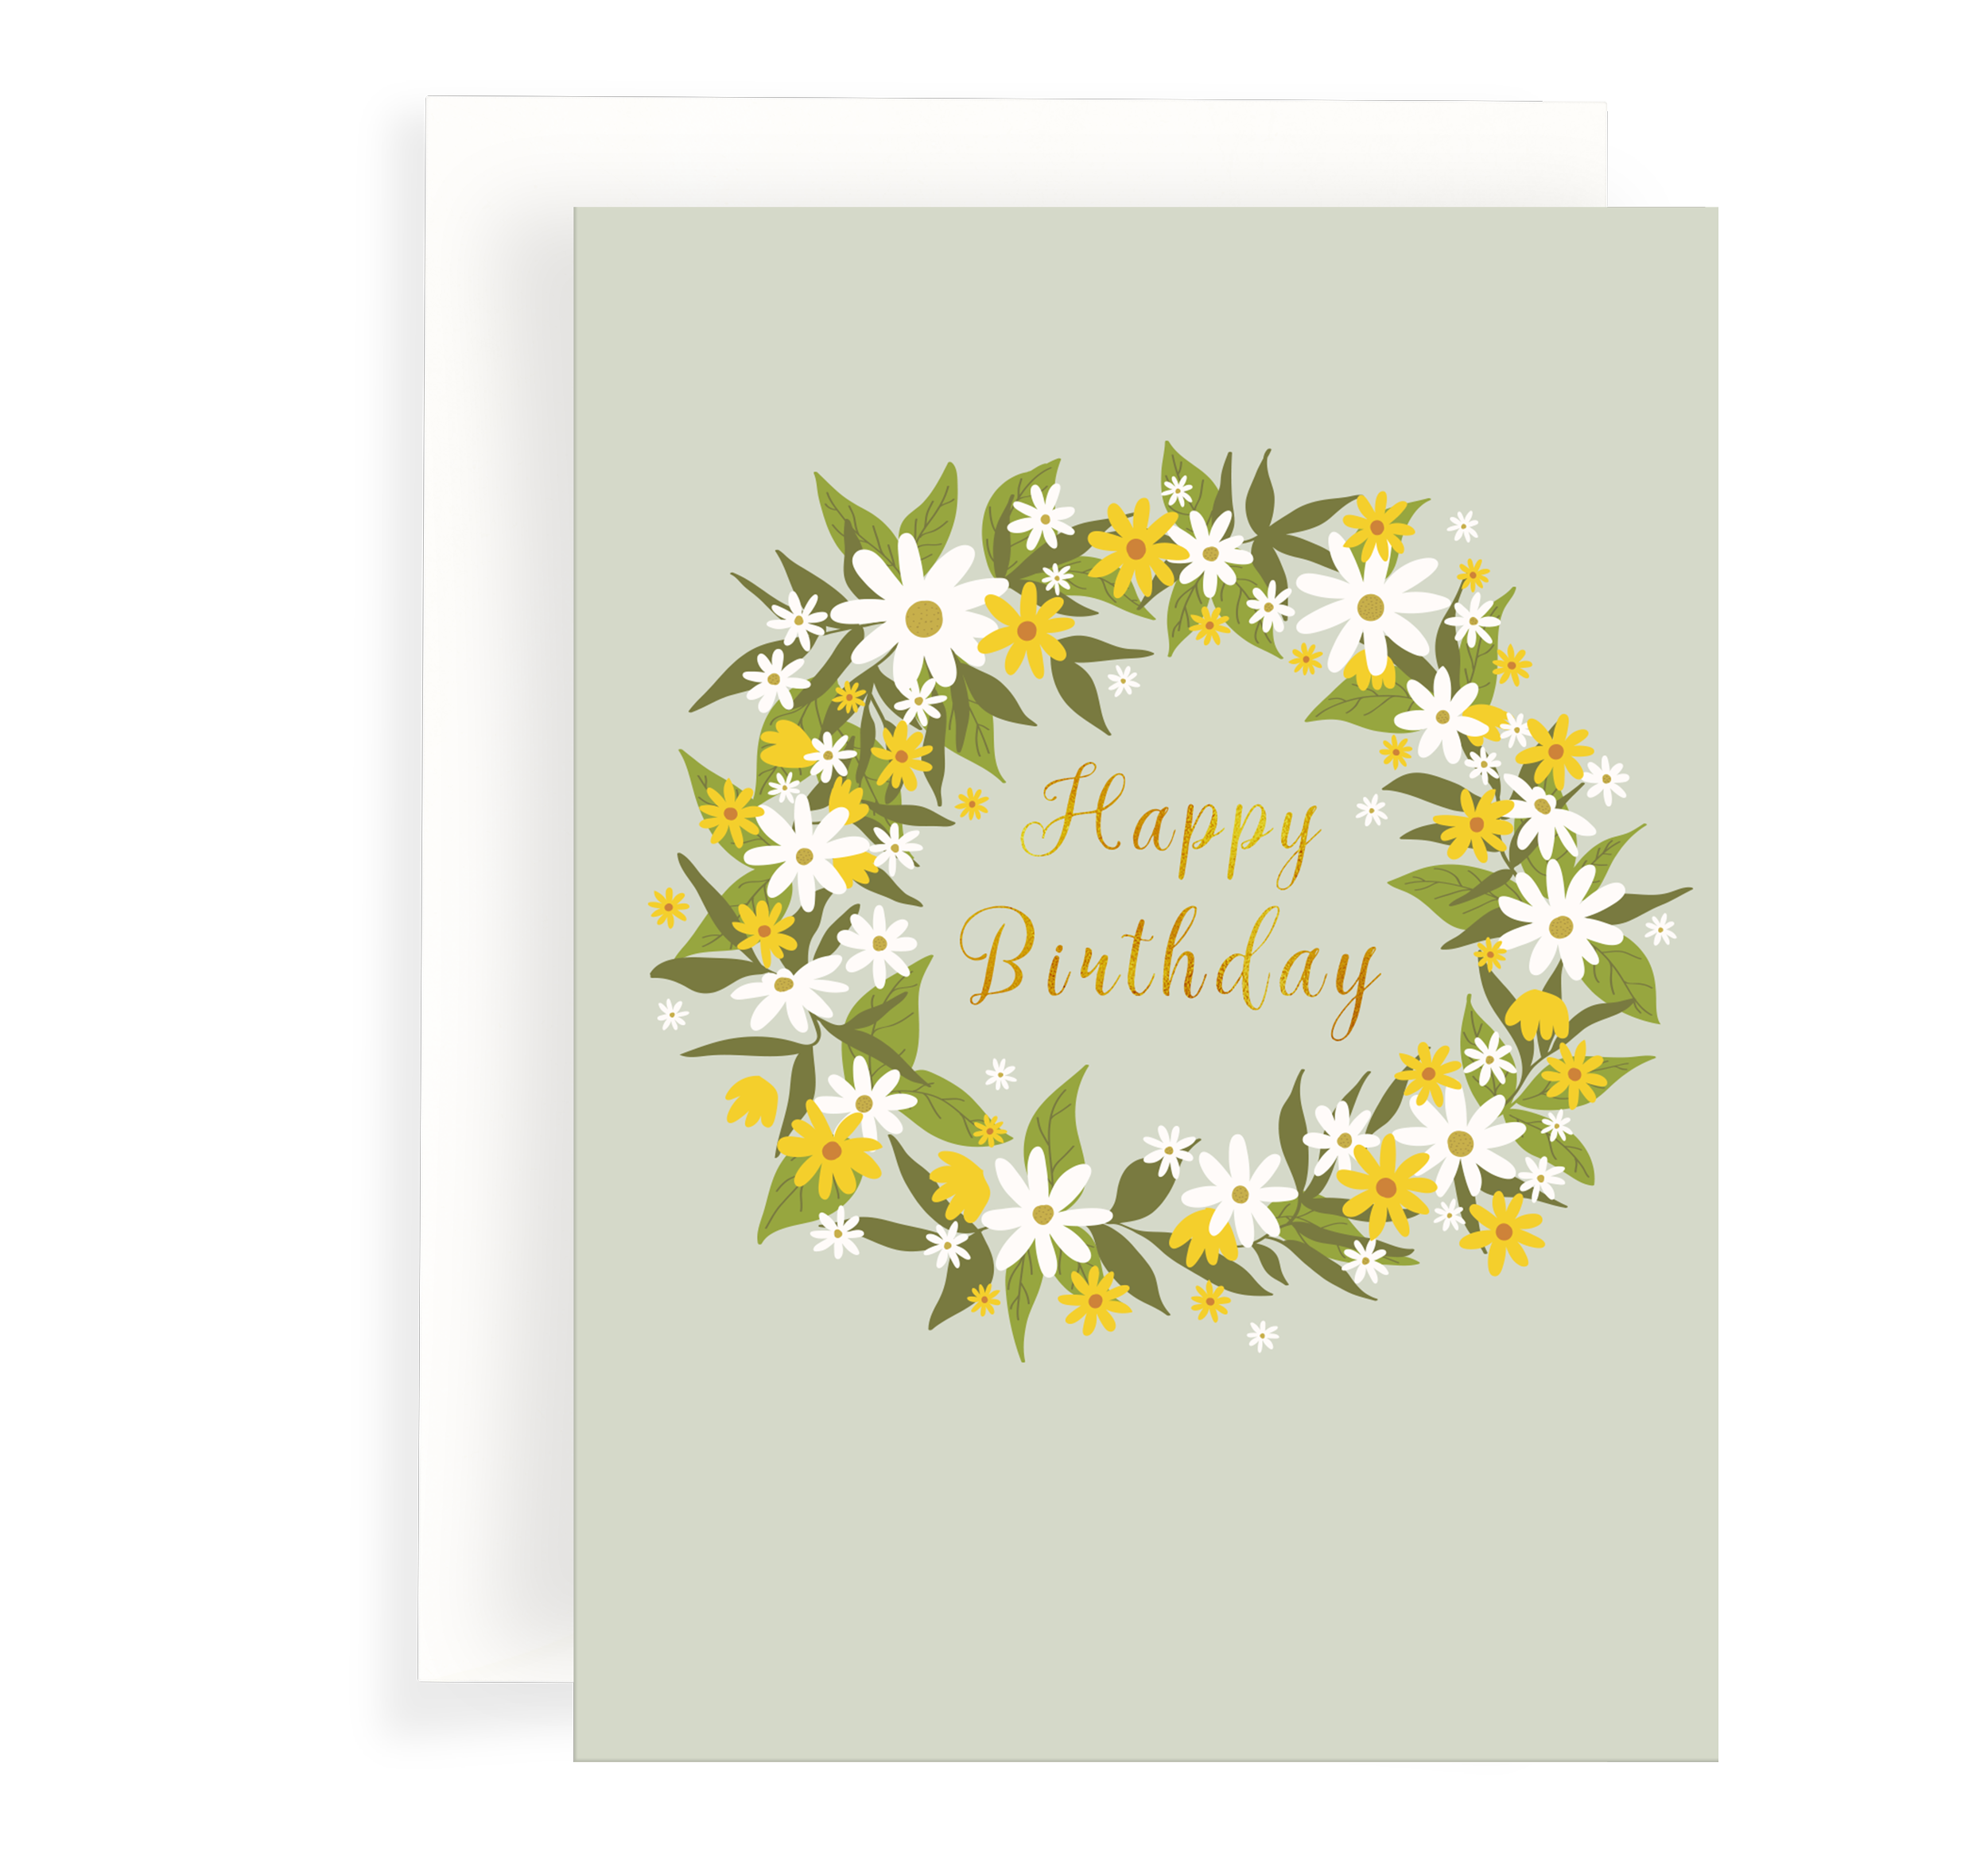 Lovely daisy wreath illustrated card on a pale green background, Gold Foil text says 'Happy Birthday'